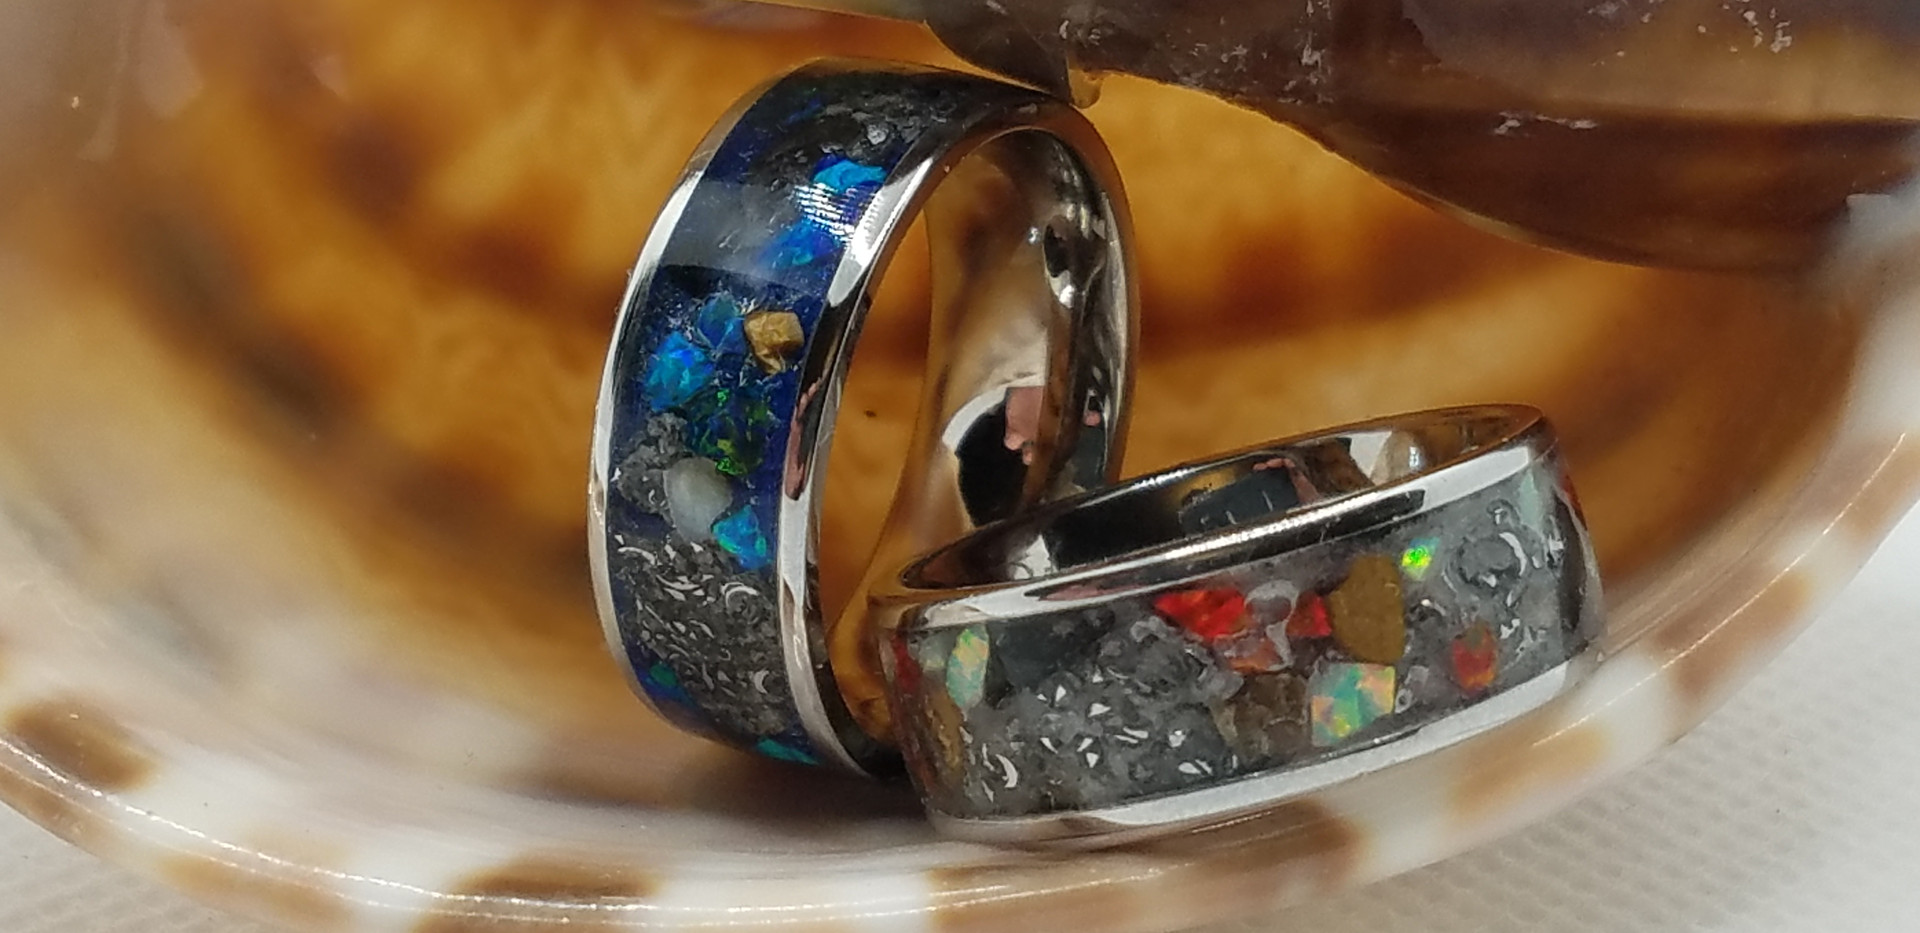 A pair of rings sit in the opening of a seashell